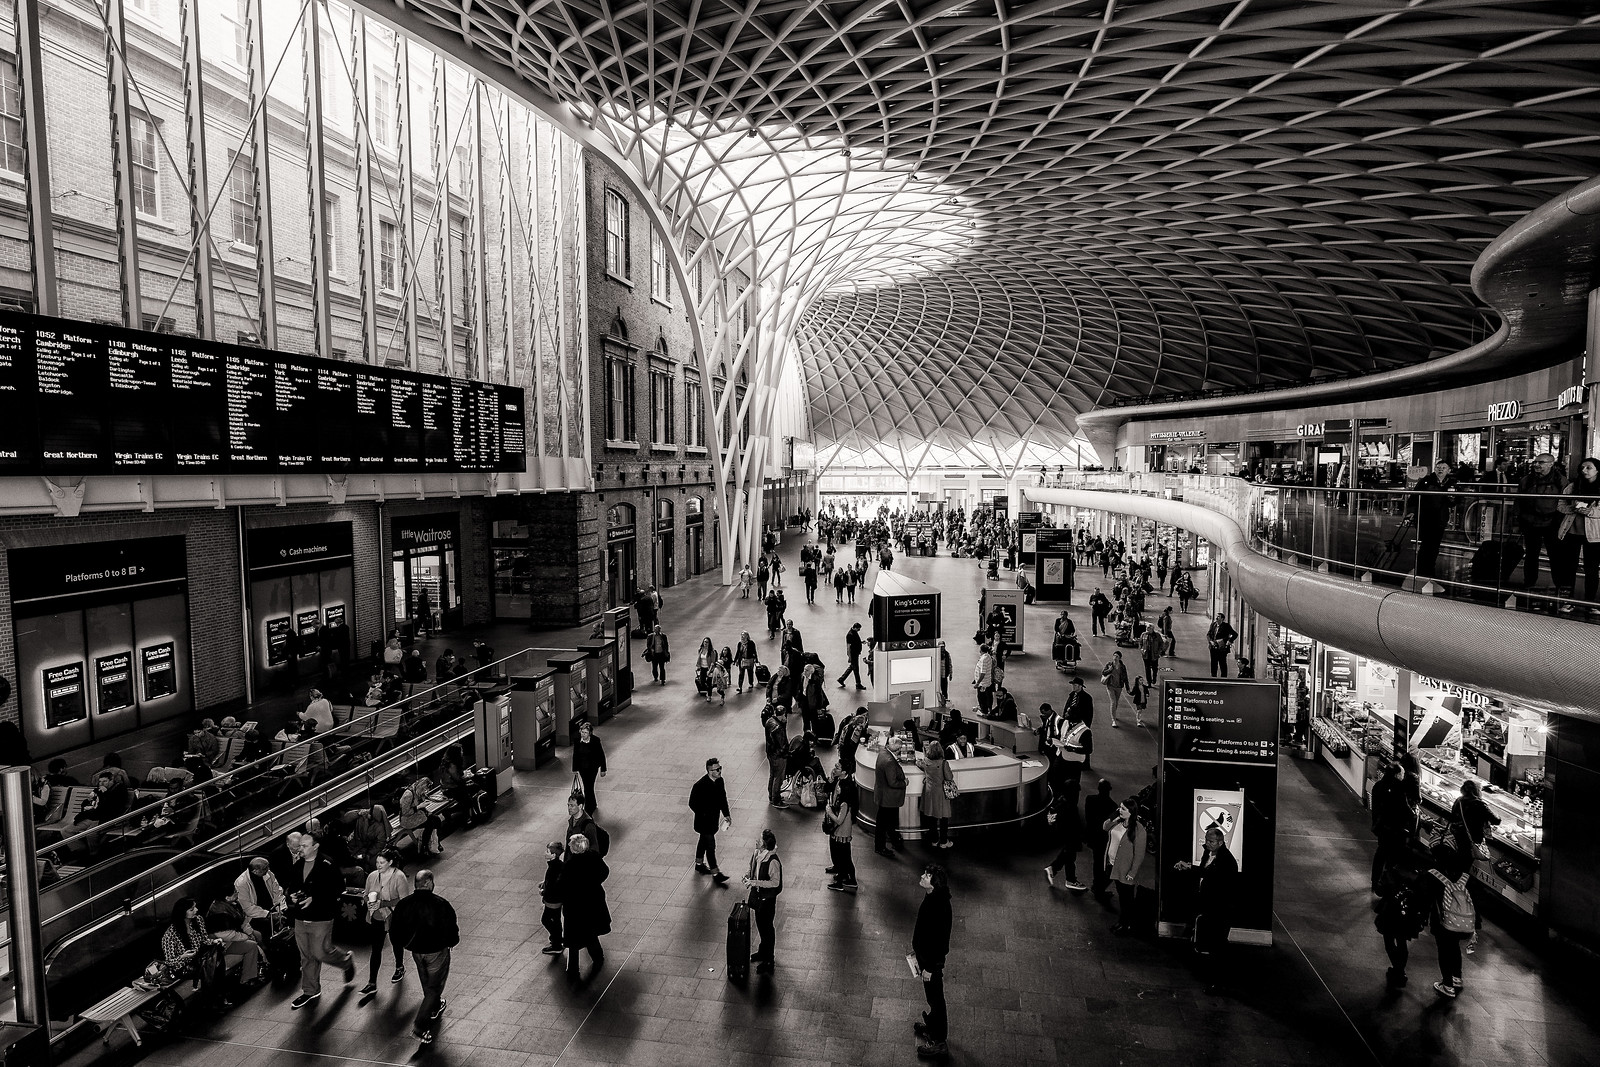 King's Cross: Rush Hour